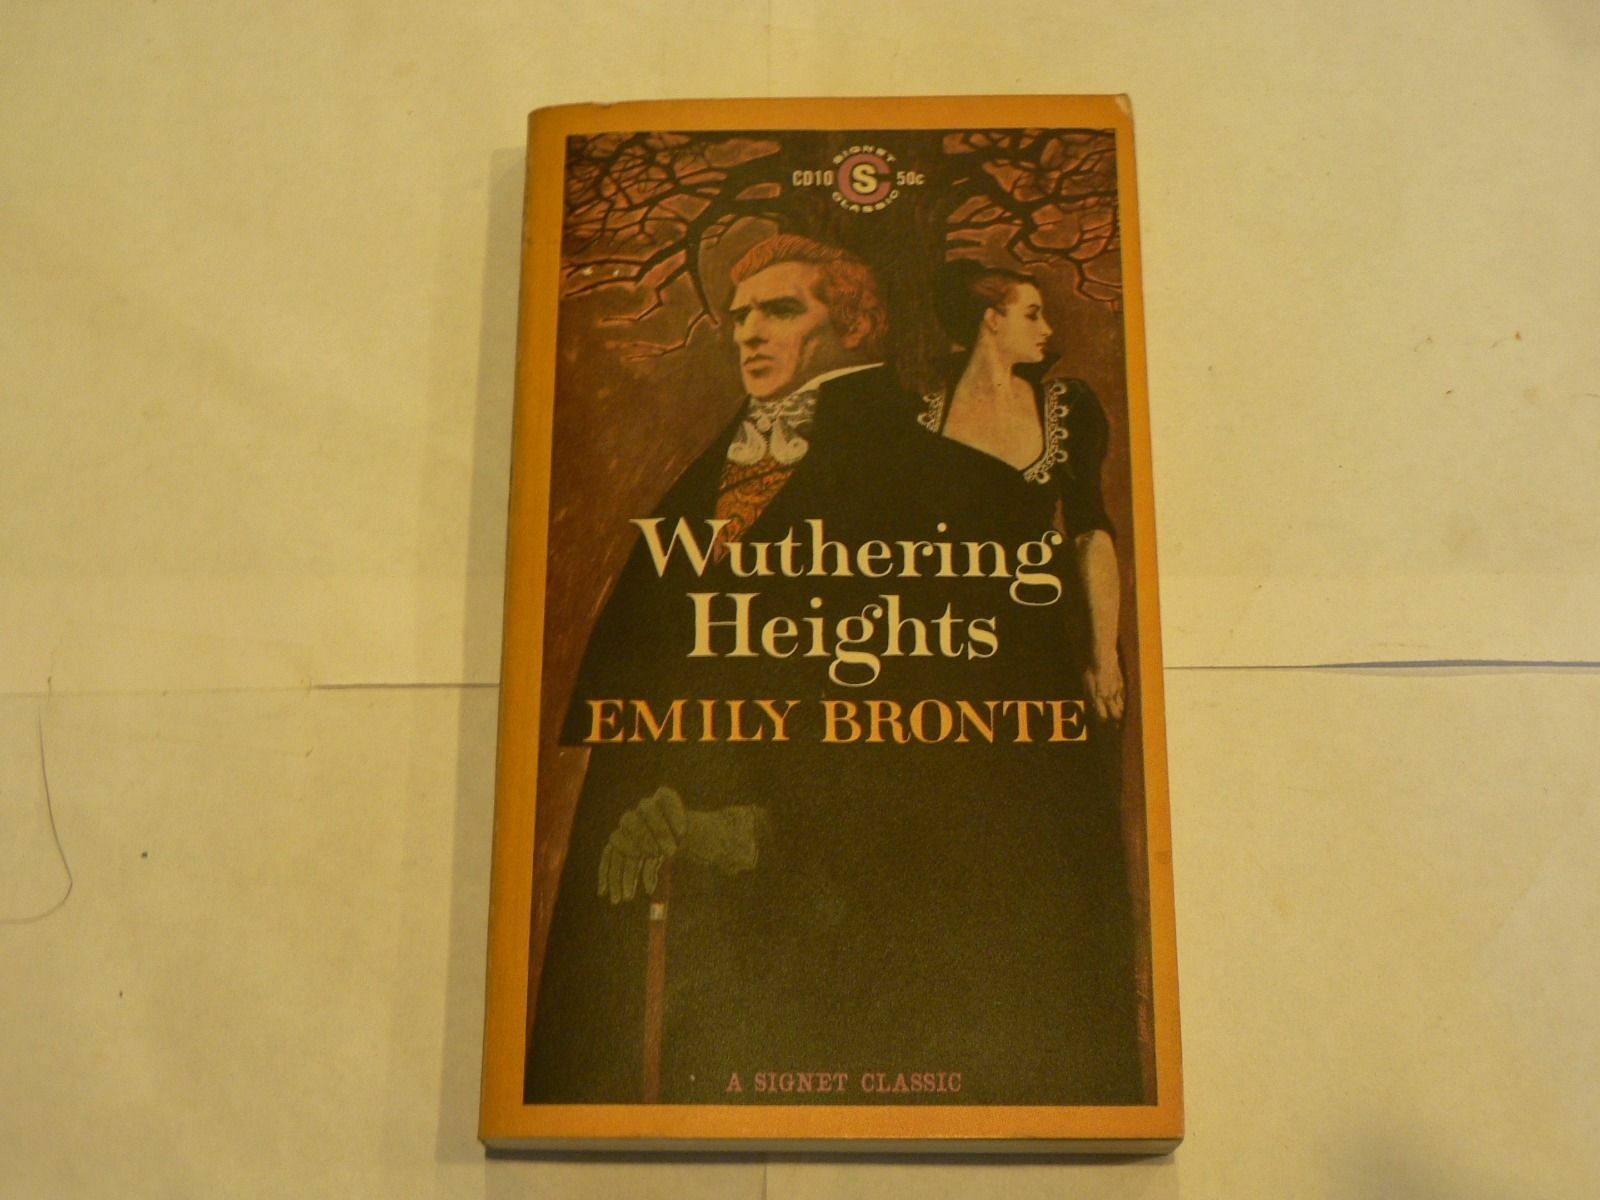 the three aspects of destructive relationships in the novel wuthering heights by emily bronte Wuthering heights wuthering heights by emily bronte home documents wuthering heights wuthering heights by emily bronte please download to view.